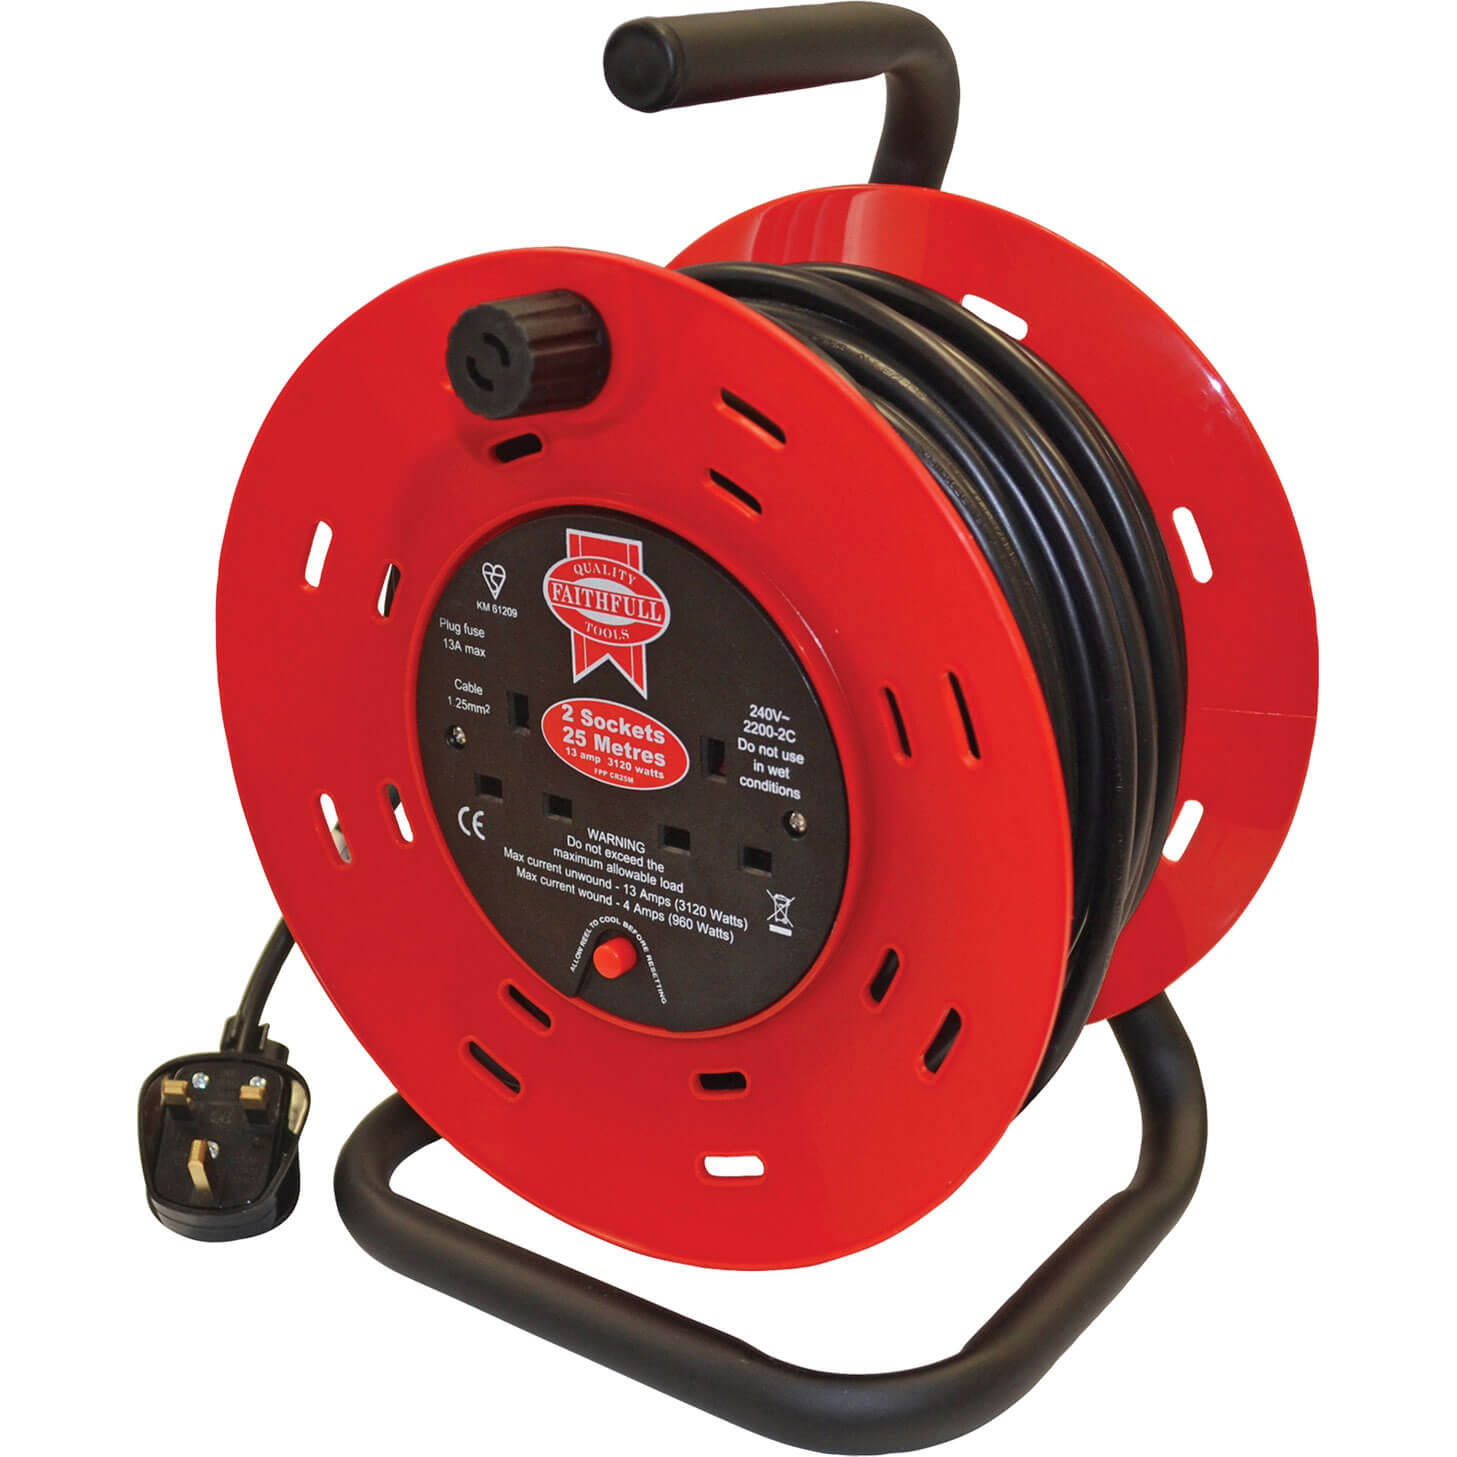 Faithfull 2 Socket Cable Extension Reel 240v 25m